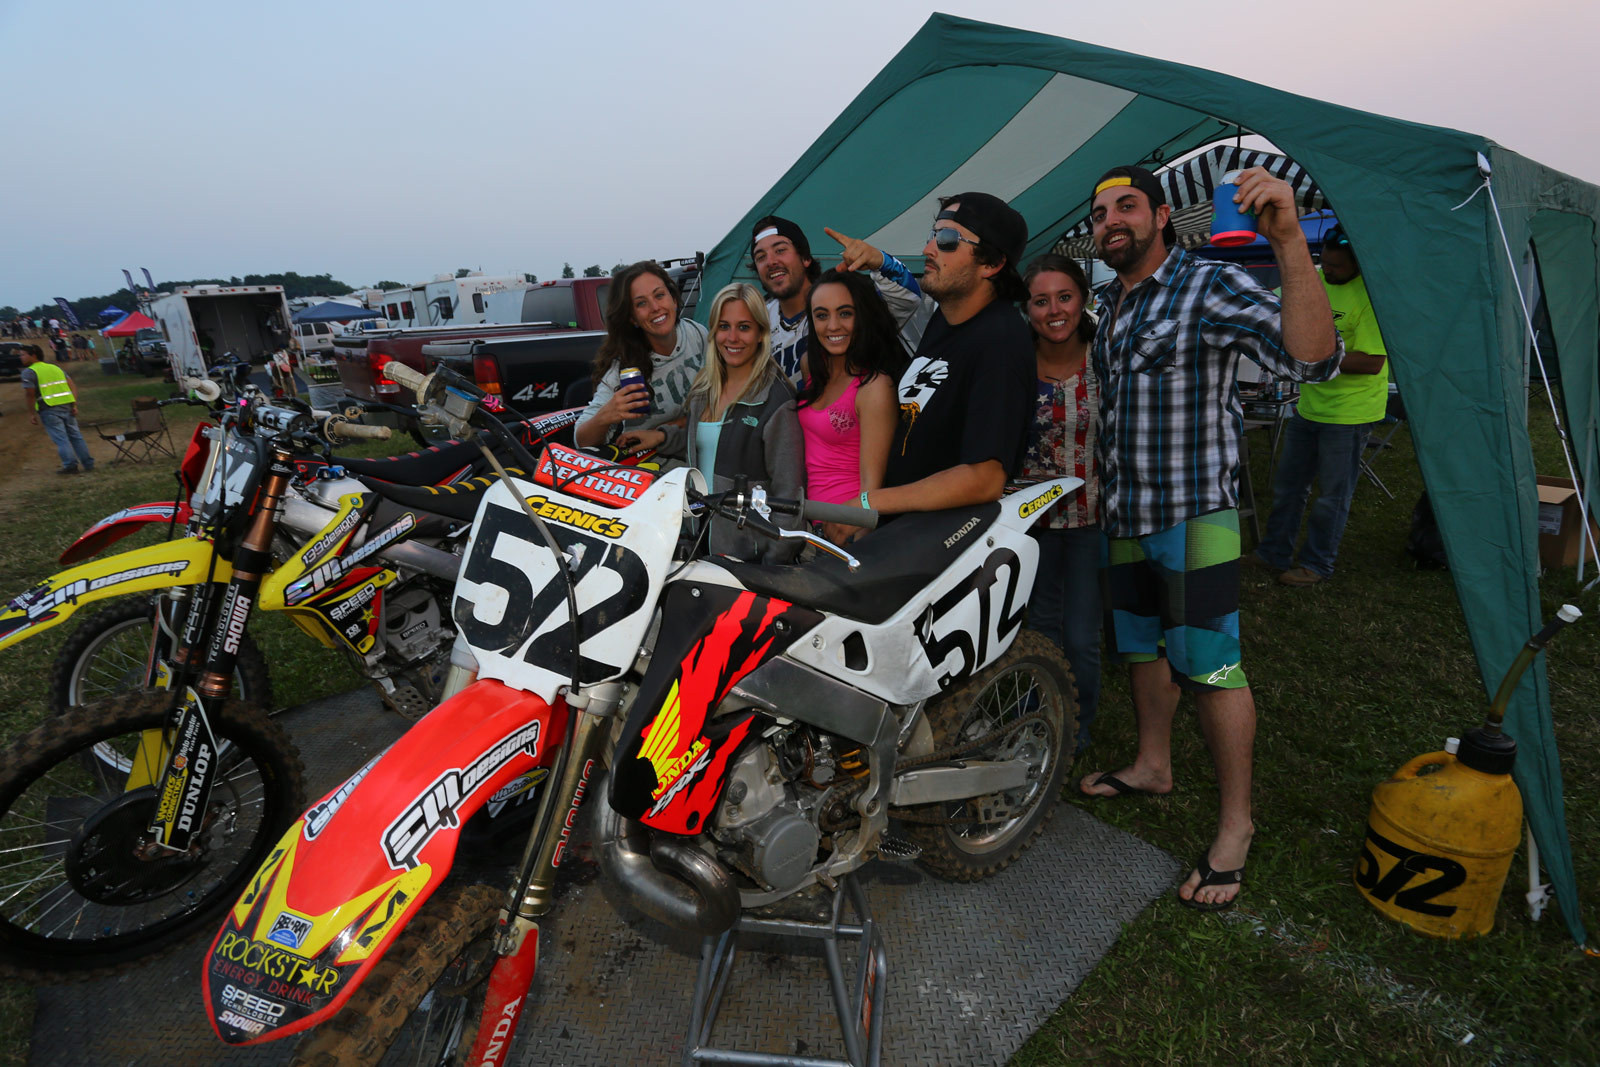 Red Bud After Hours - Vital MX Pit Bits: RedBud - Motocross Pictures - Vital MX